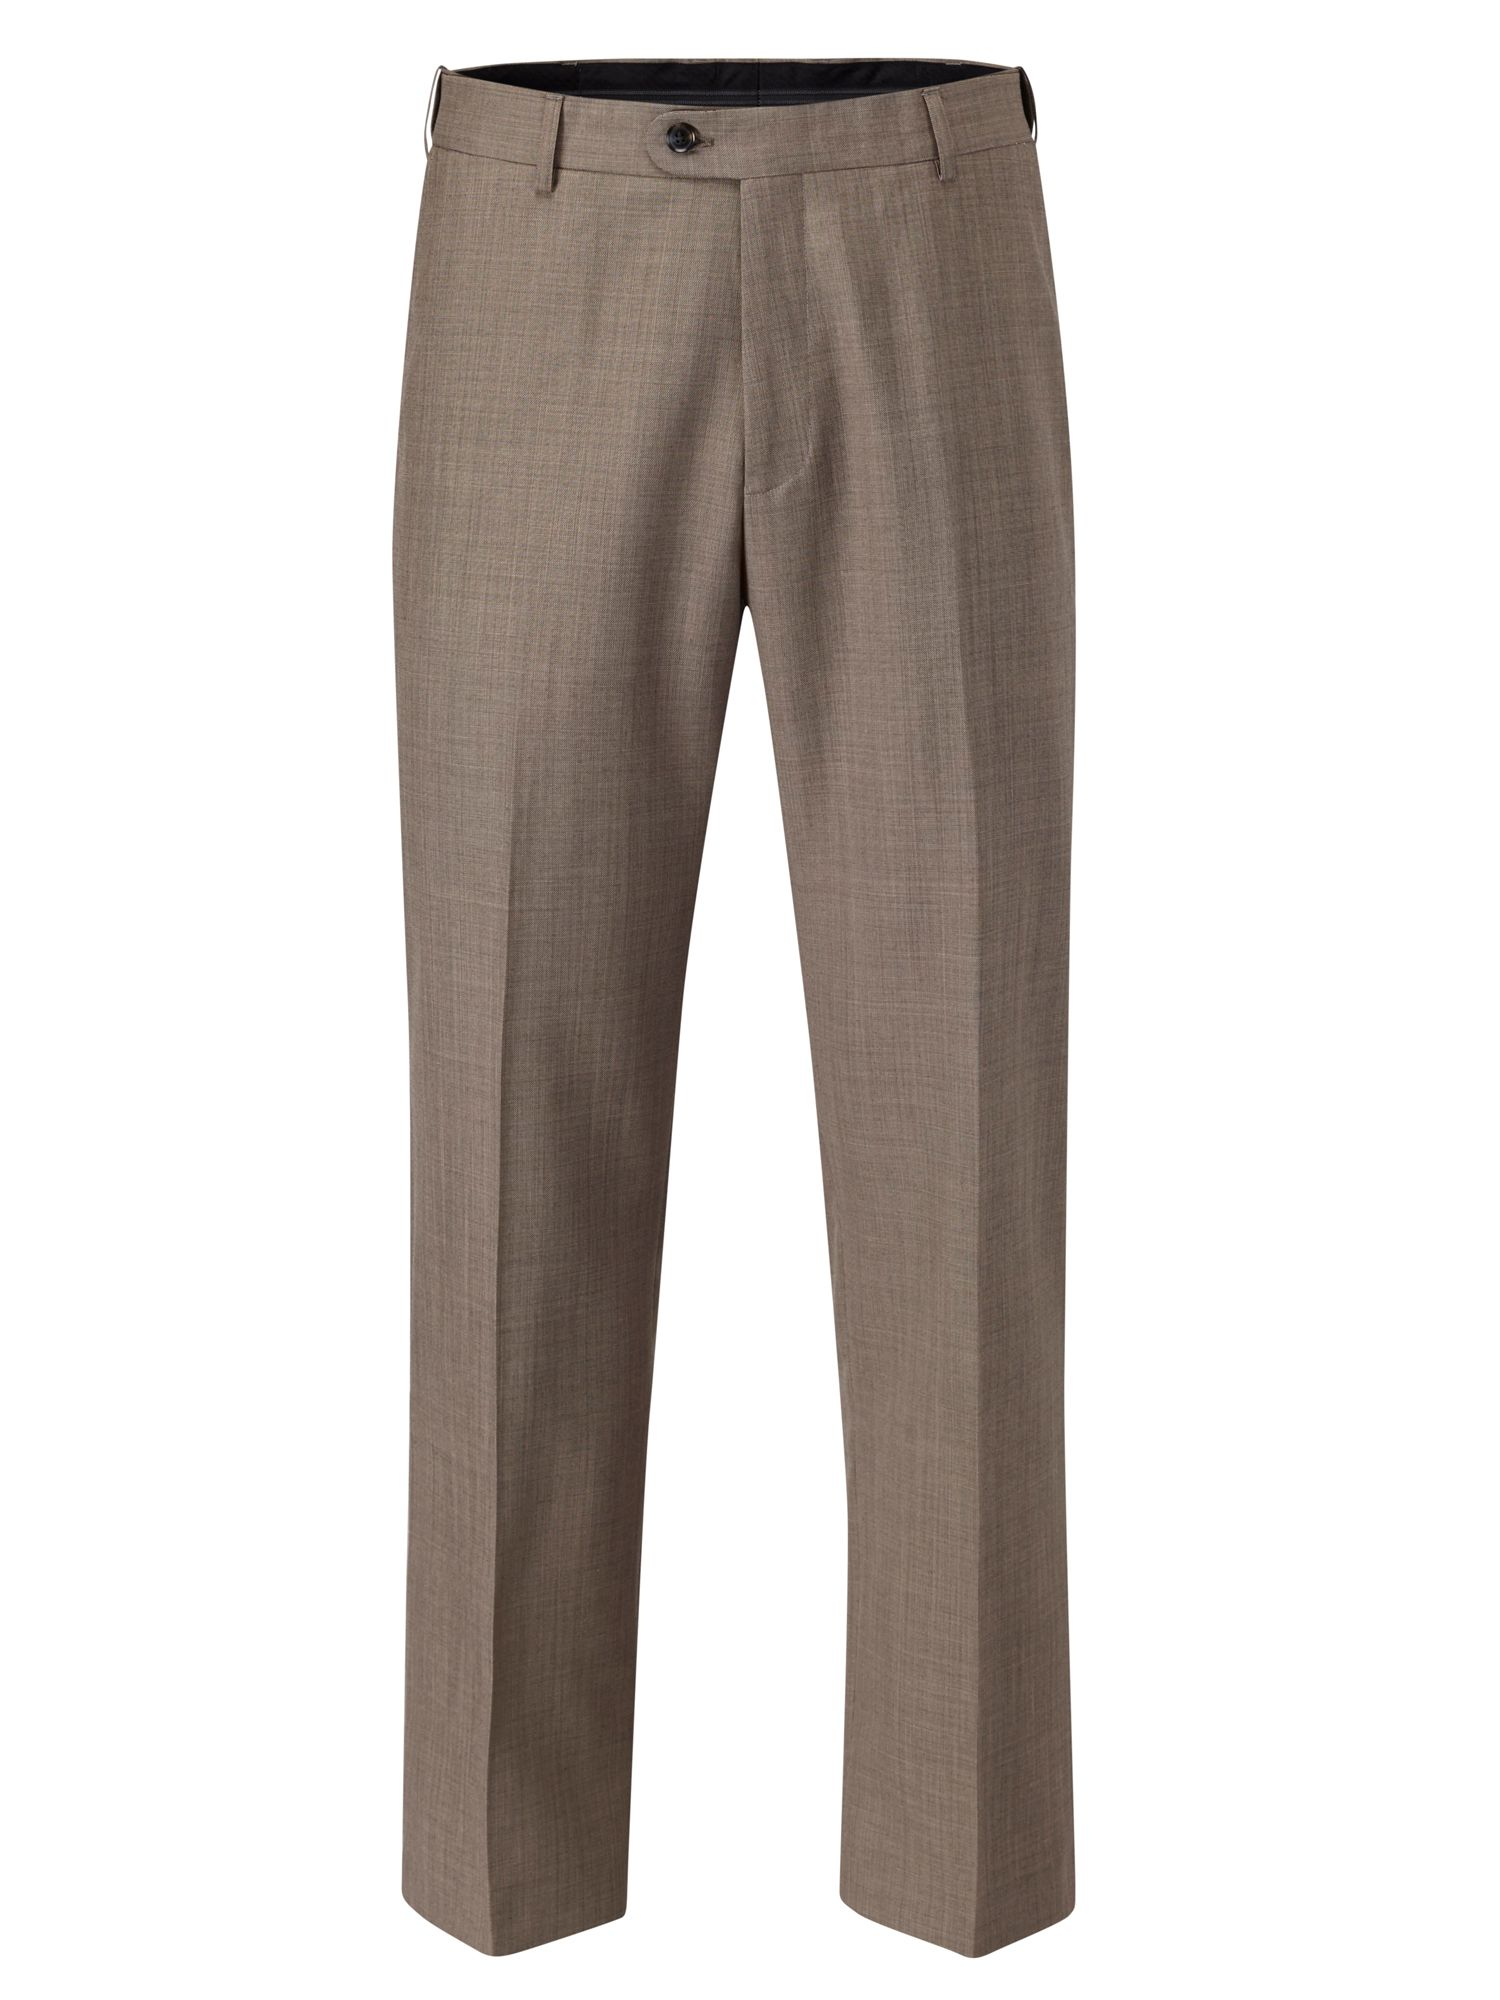 1940s Style Men's Pants and Trousers Mens Skopes Palmer Plain Classic Fit Suit Trousers £35.00 AT vintagedancer.com